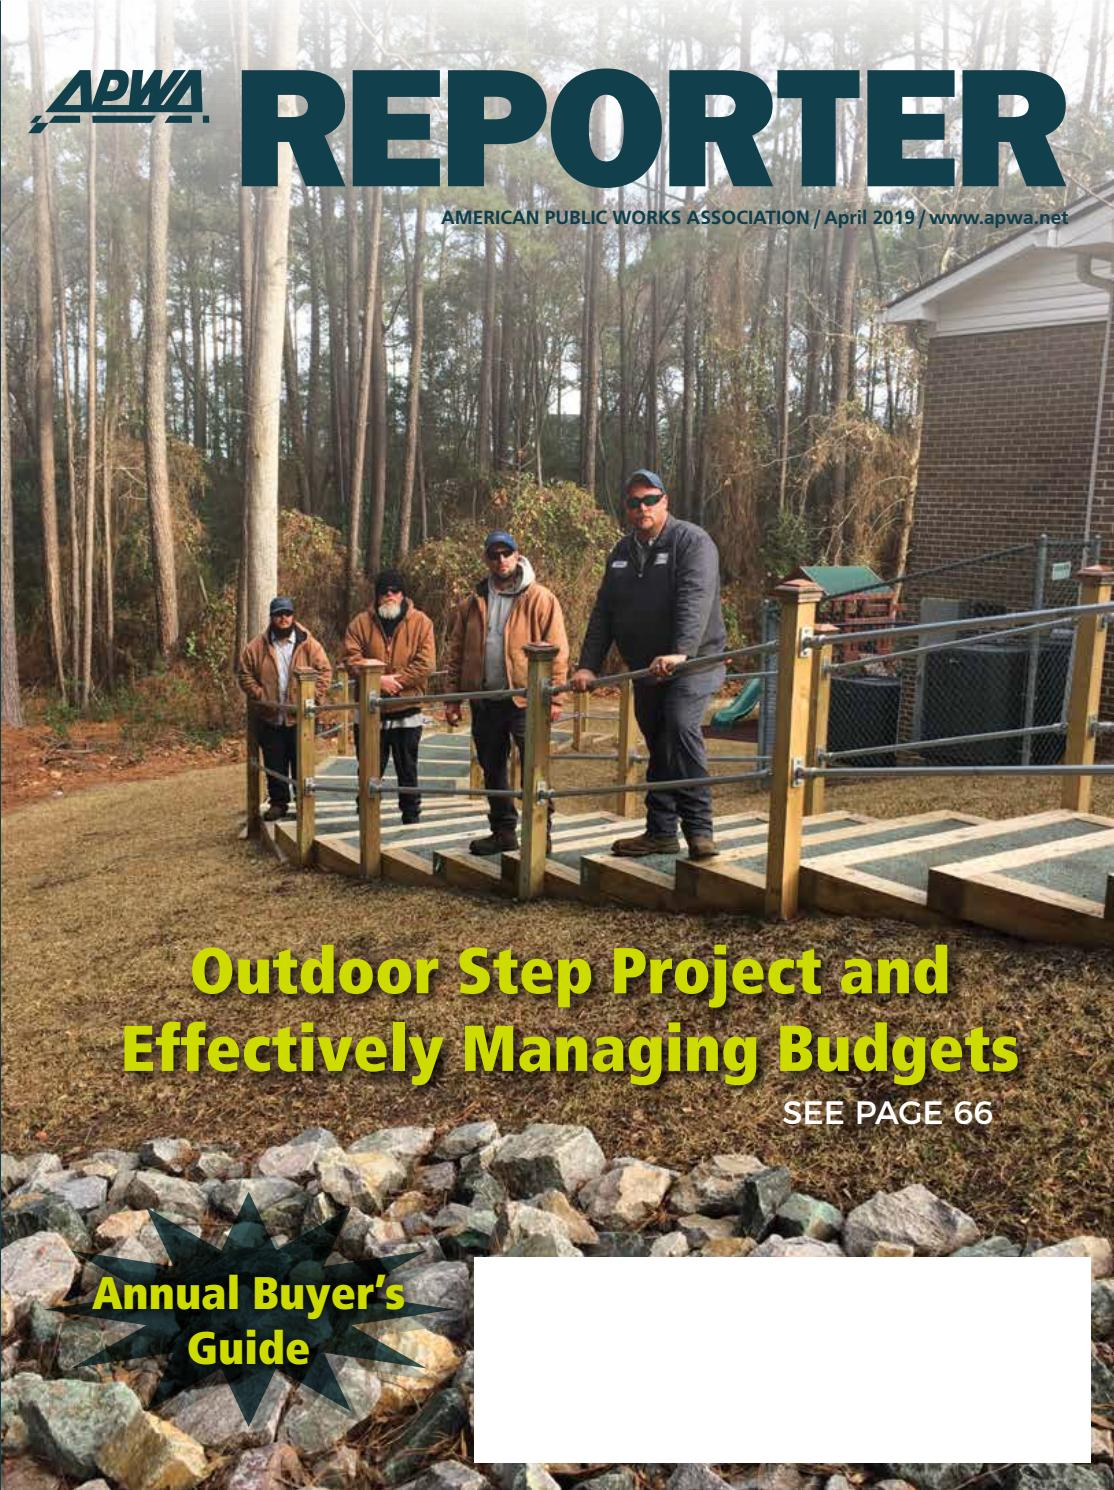 APWA Reporter, April 2019 issue by American Public Works